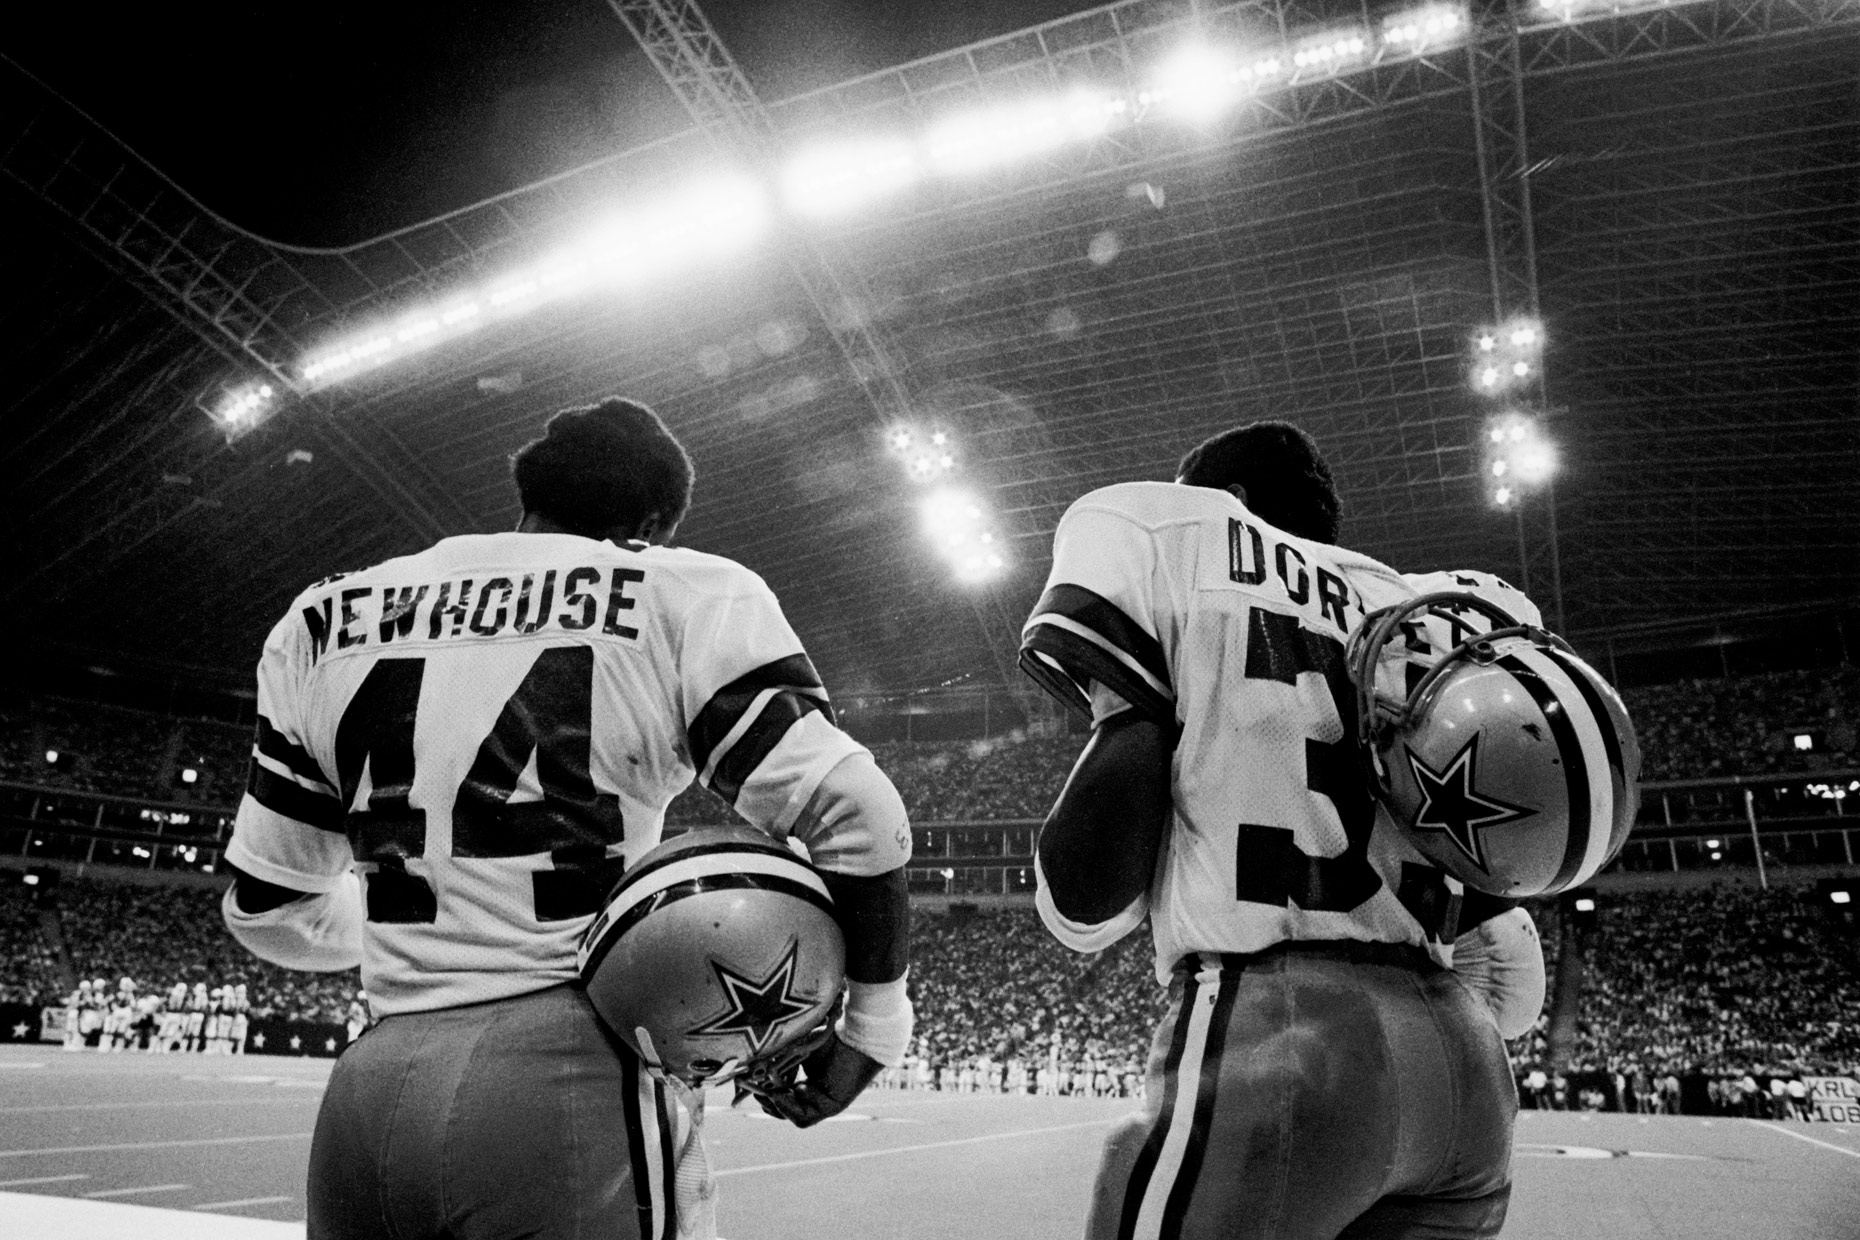 Robert Newhouse and Tony Dorsett Dallas Cowboys 1981 photo by Kevin Brown